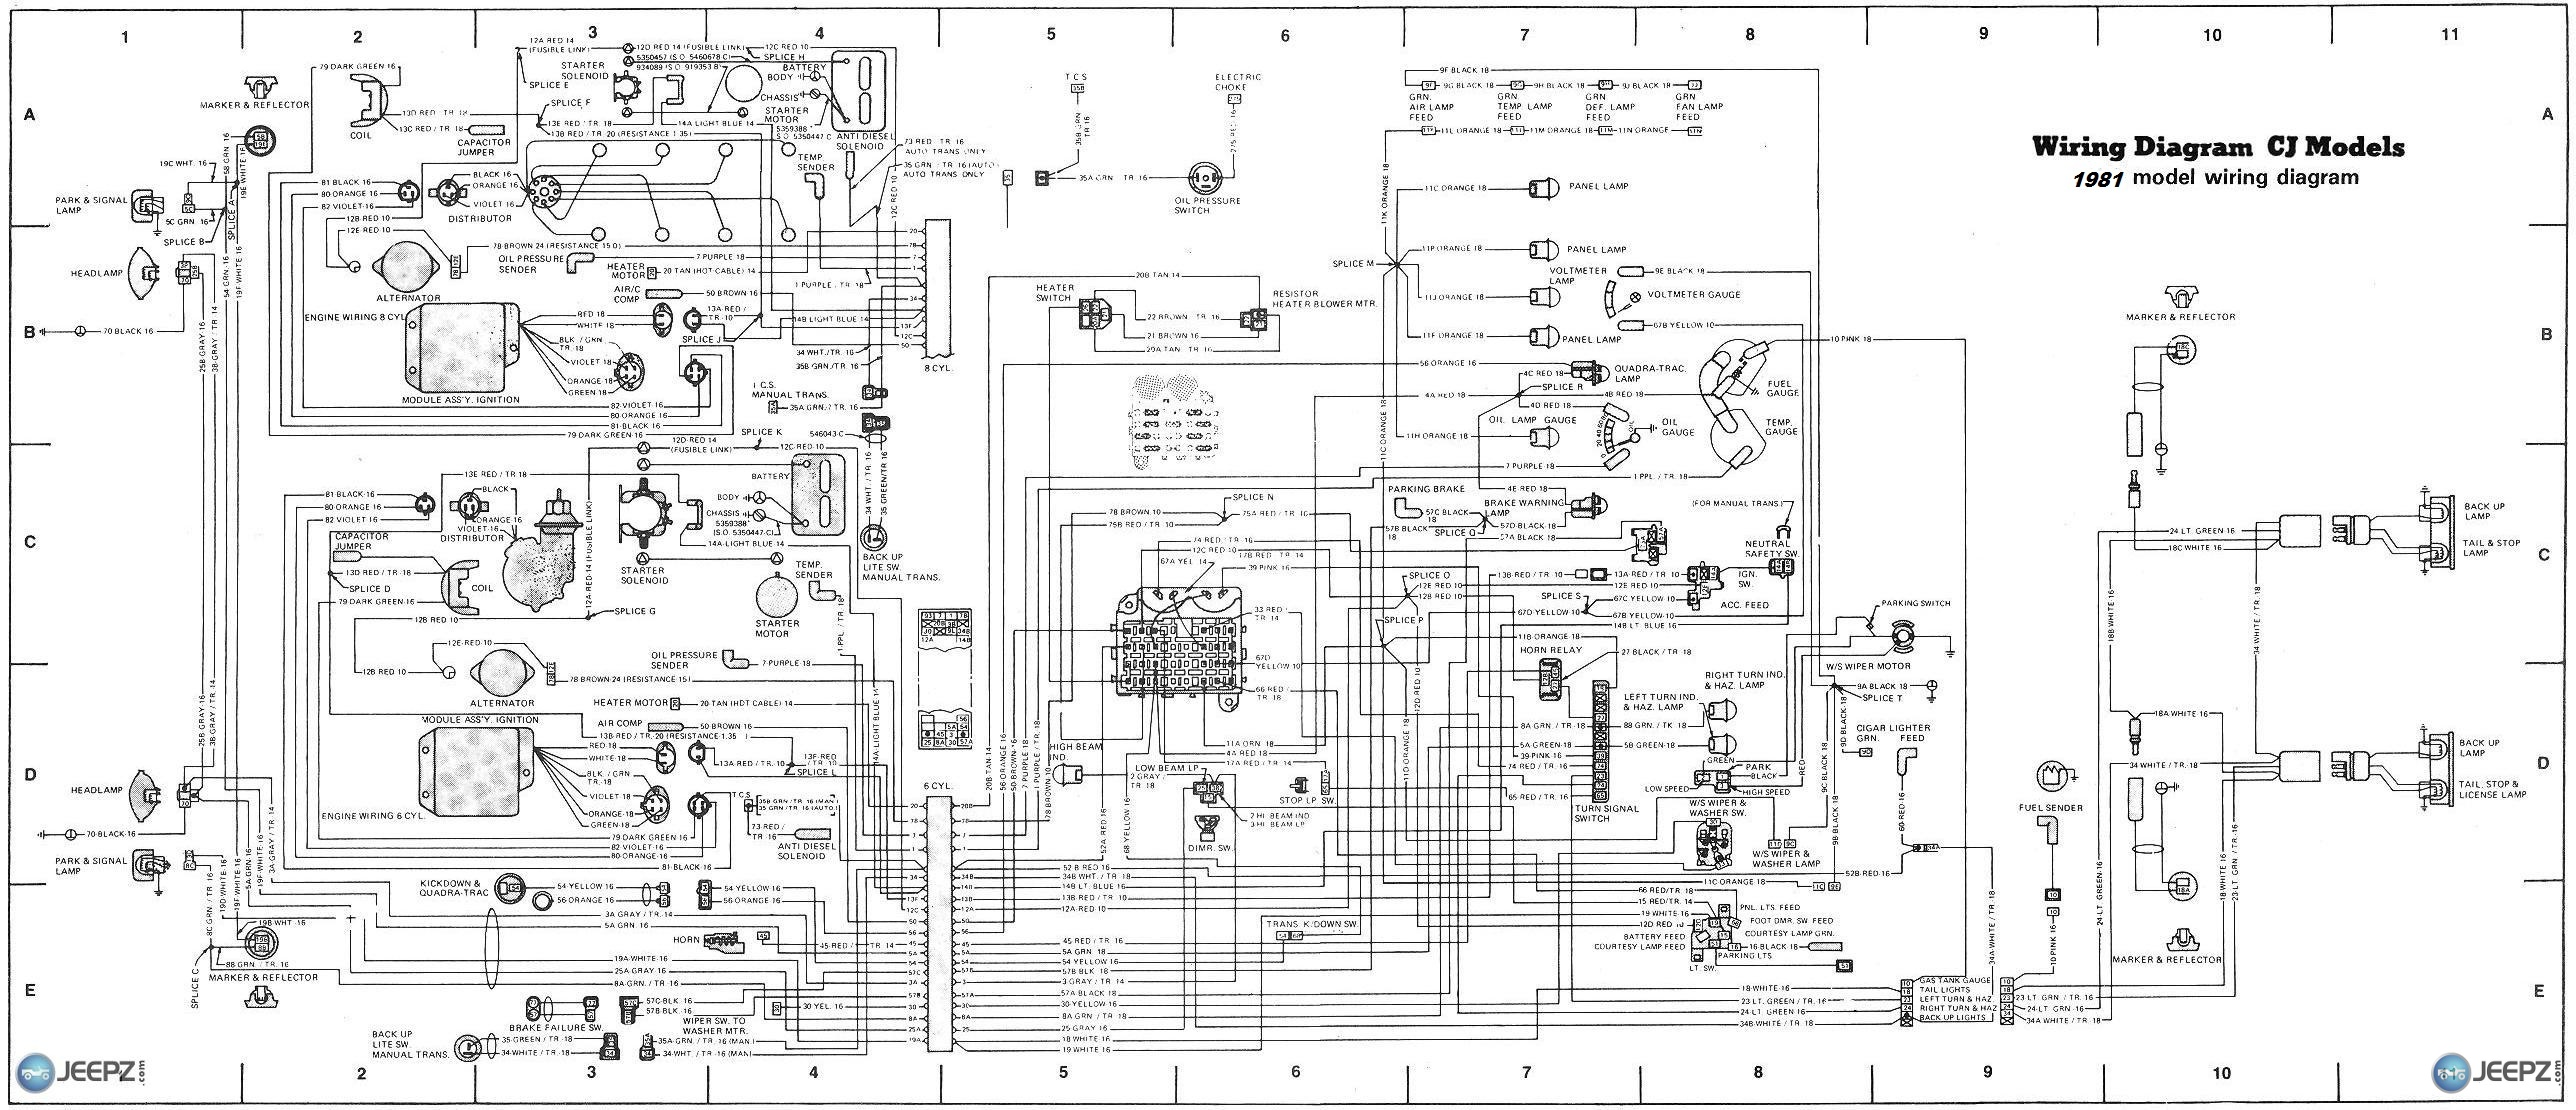 hight resolution of  7993d1301845049 cj 7 wire diagram cj wiring diagram 1981 resized665 2c2876ssld1 opel corsa b